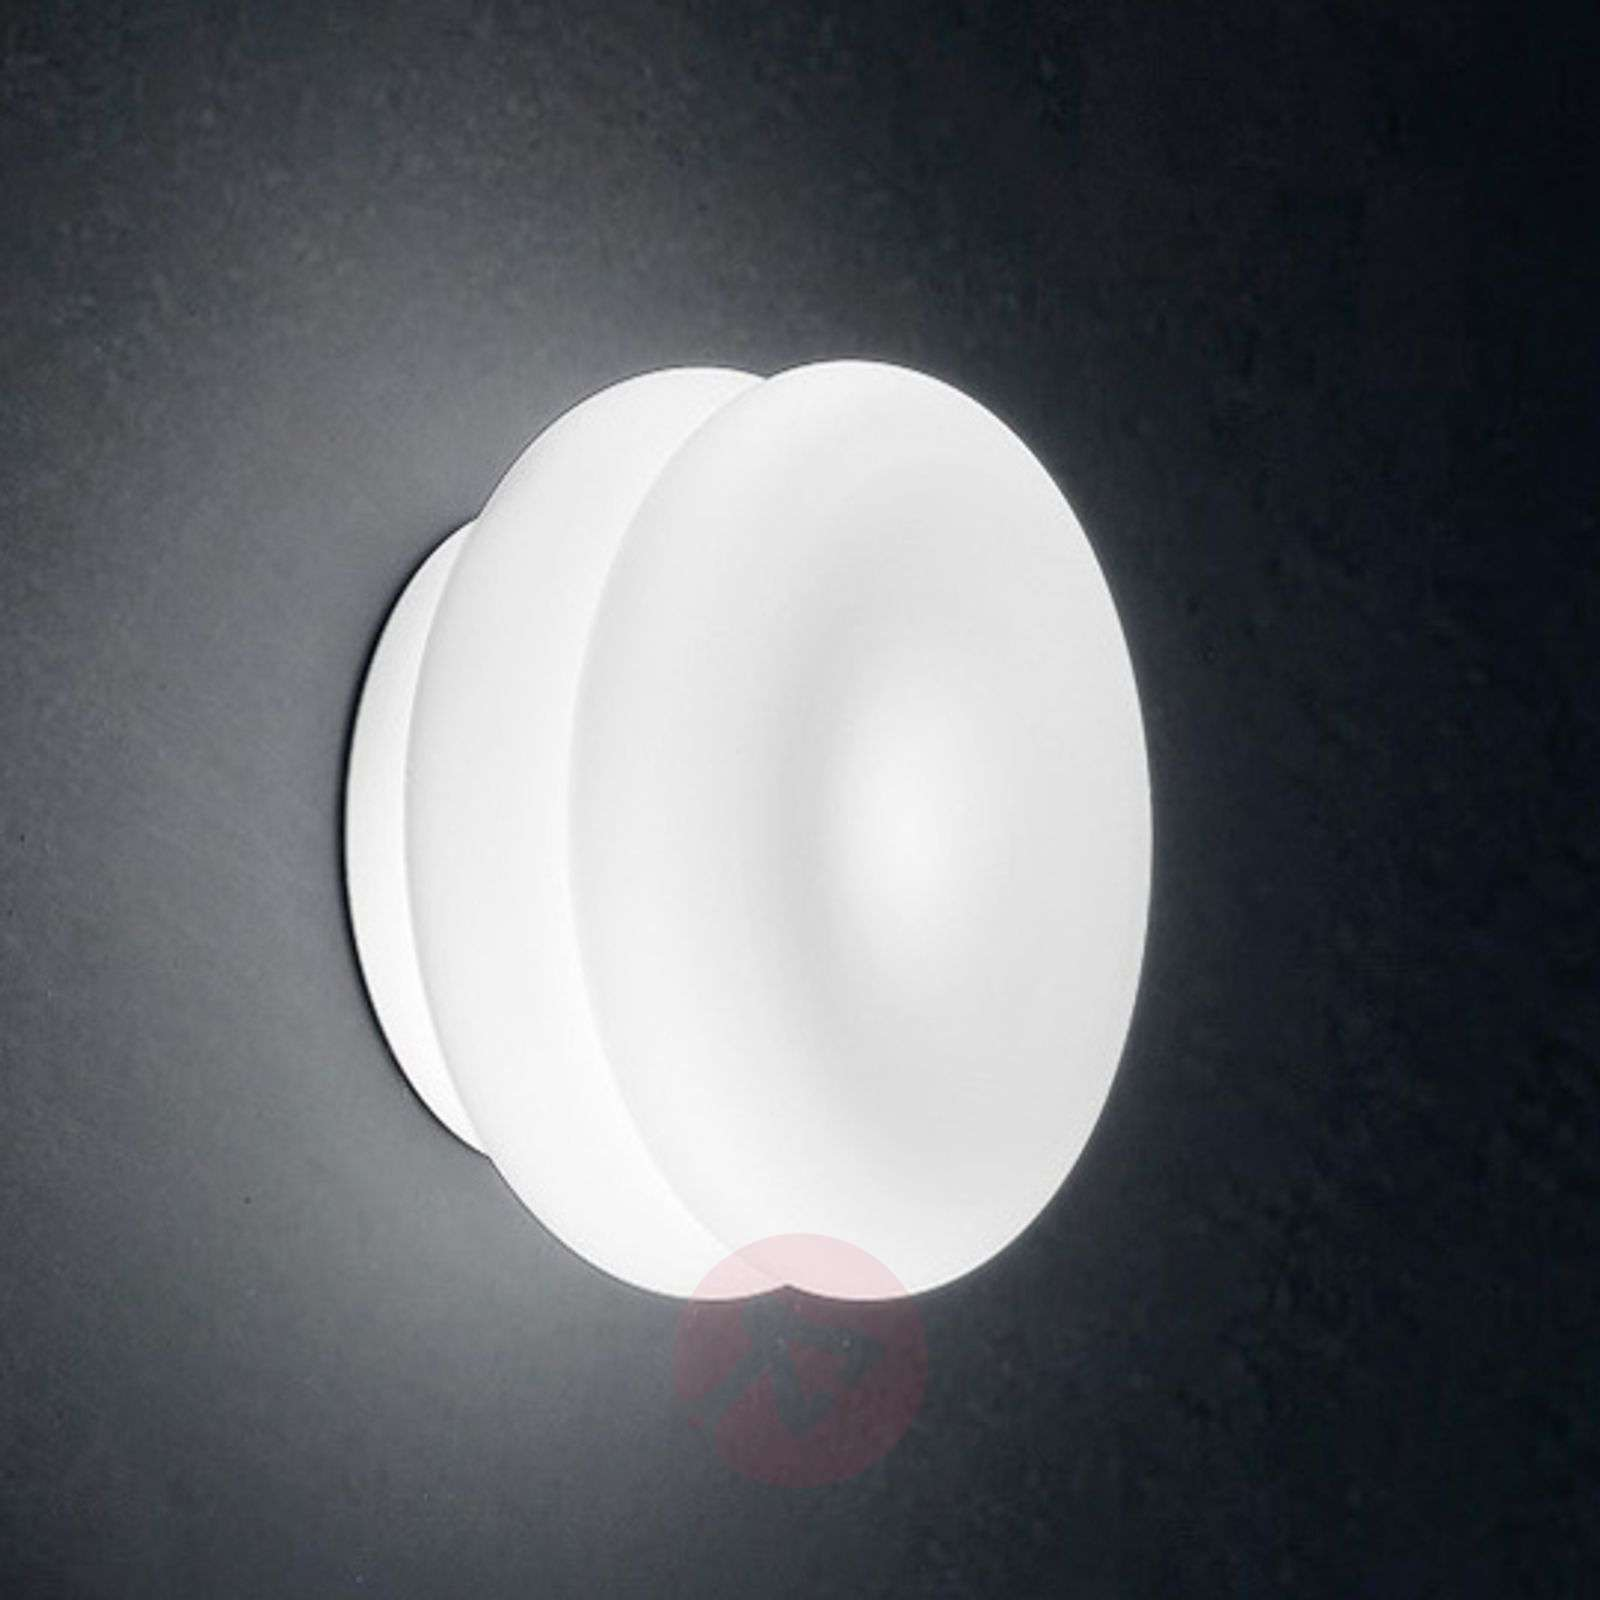 White Dimmable Wall Lights : White LED wall light Wimpy made of glass Lights.ie